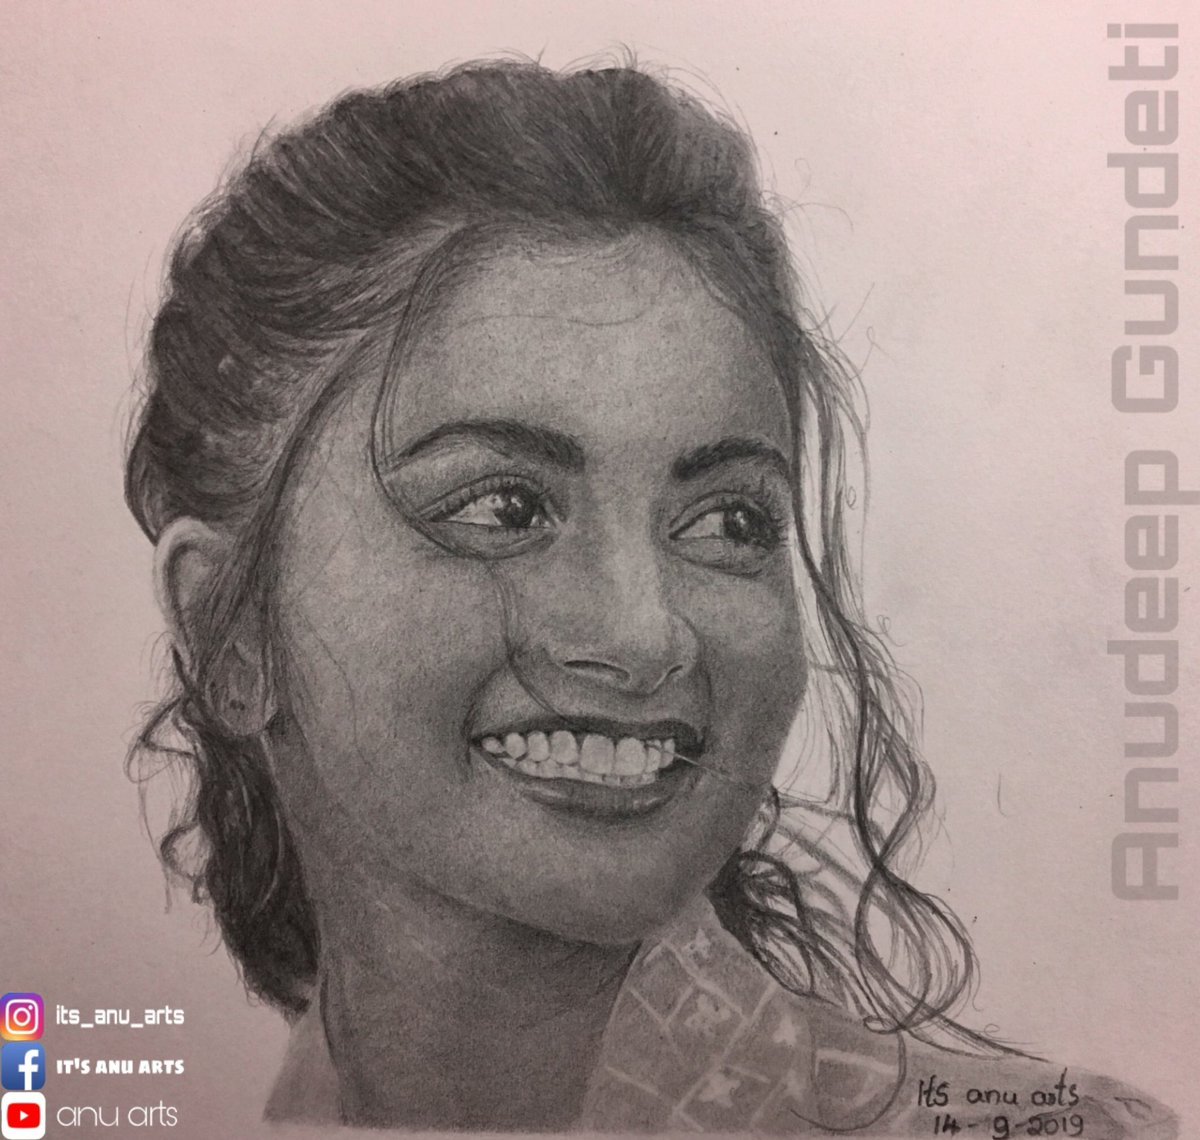 My New portrait of heroine @hegdepooja  Hope you like this sketch... . . Art by :- Anudeep Gundeti . #poojahegde #poojahegdefc #poojahegdefans #poojahedgehot #poojahegdeinsta #tollywoodhotactress #tollywood #artist #artistsoninstagram #artwork #drawing #artspic.twitter.com/ghMAmBywtV